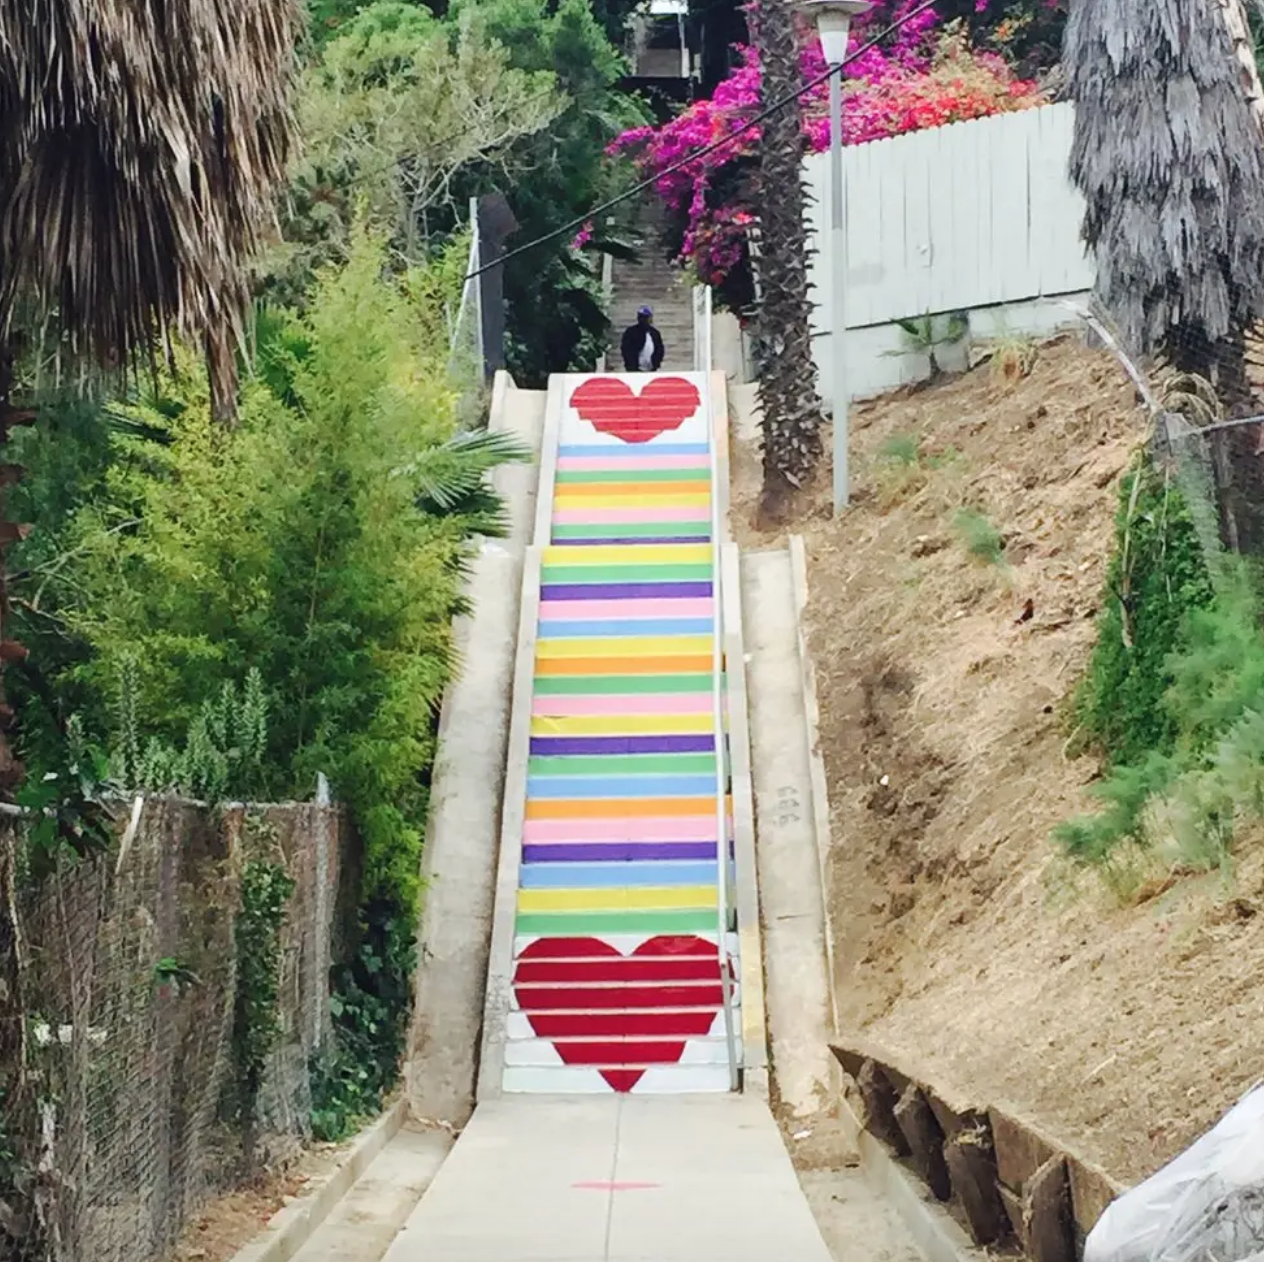 Stair Candy by Carla O'Brien in Silverlake, Los Angeles, as seen on Wescover.